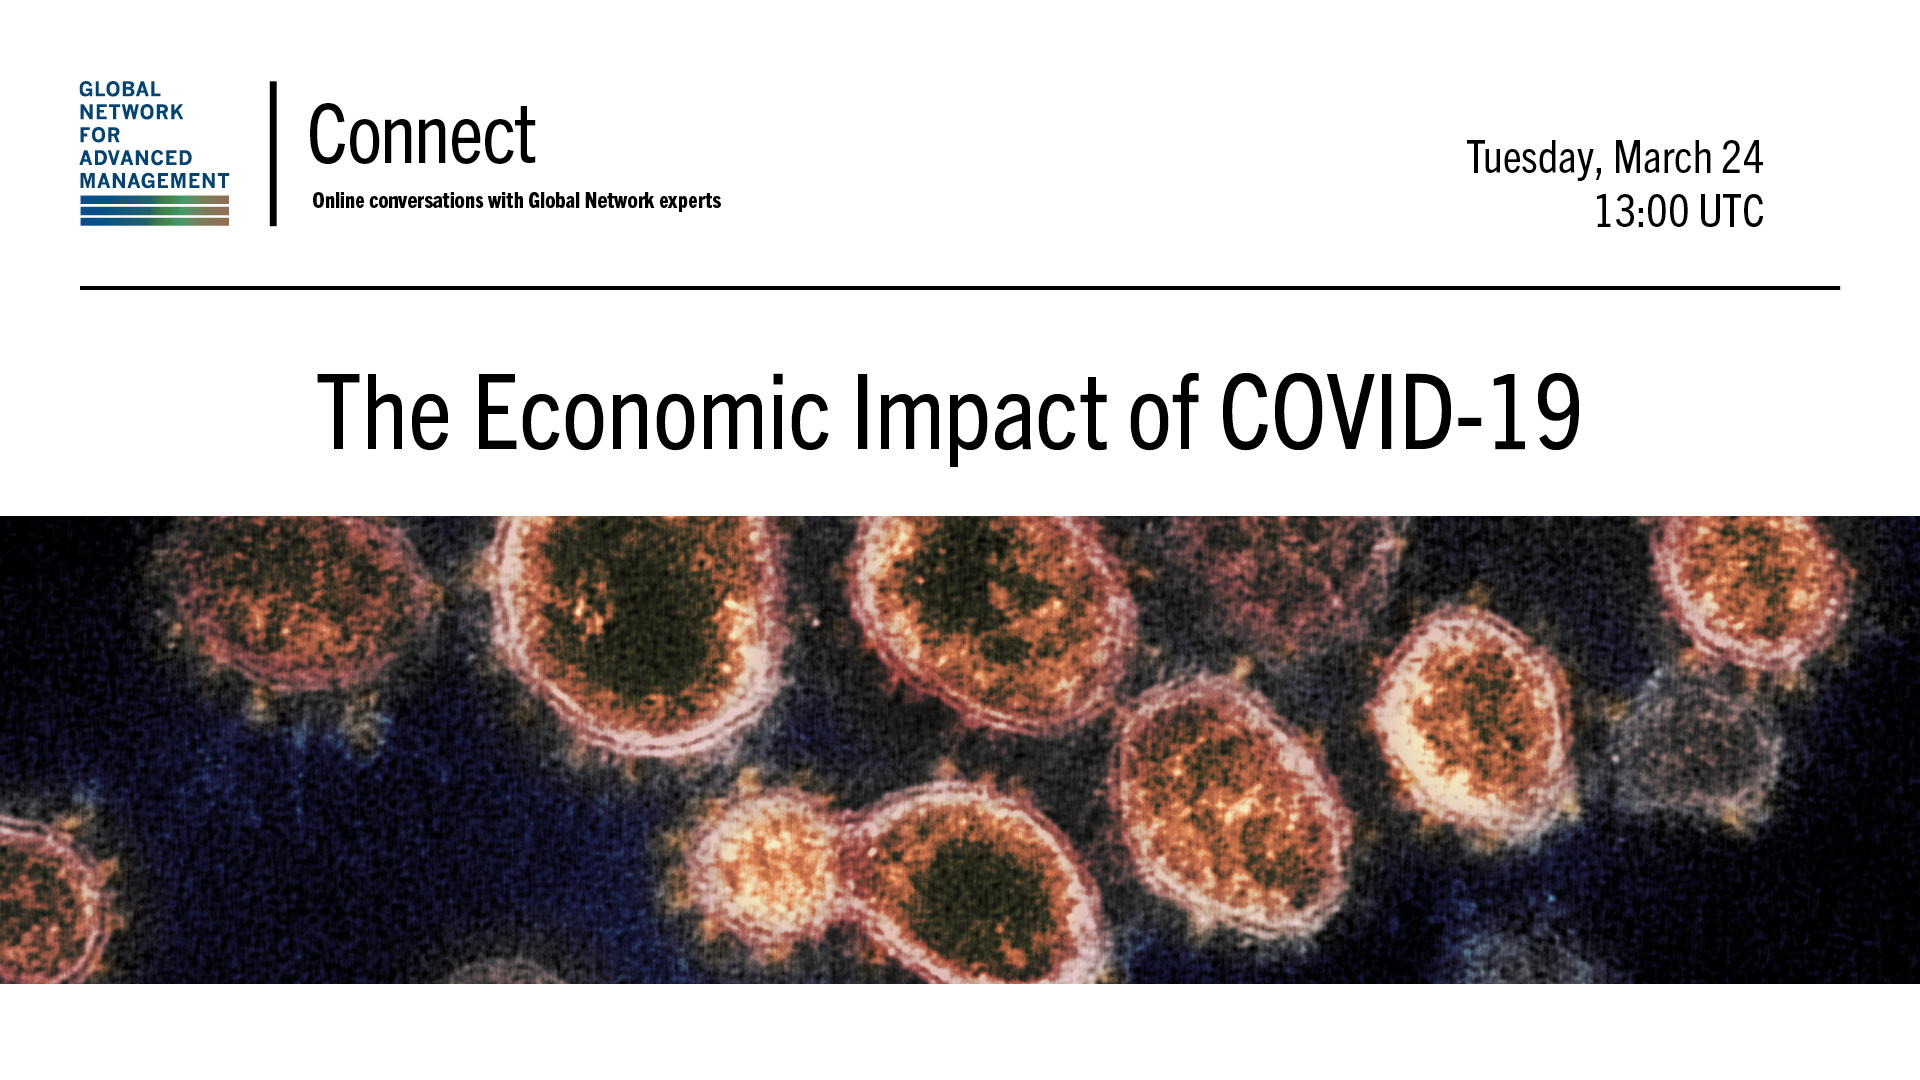 Information about the event illustrated by an image of a COVID-19 virus